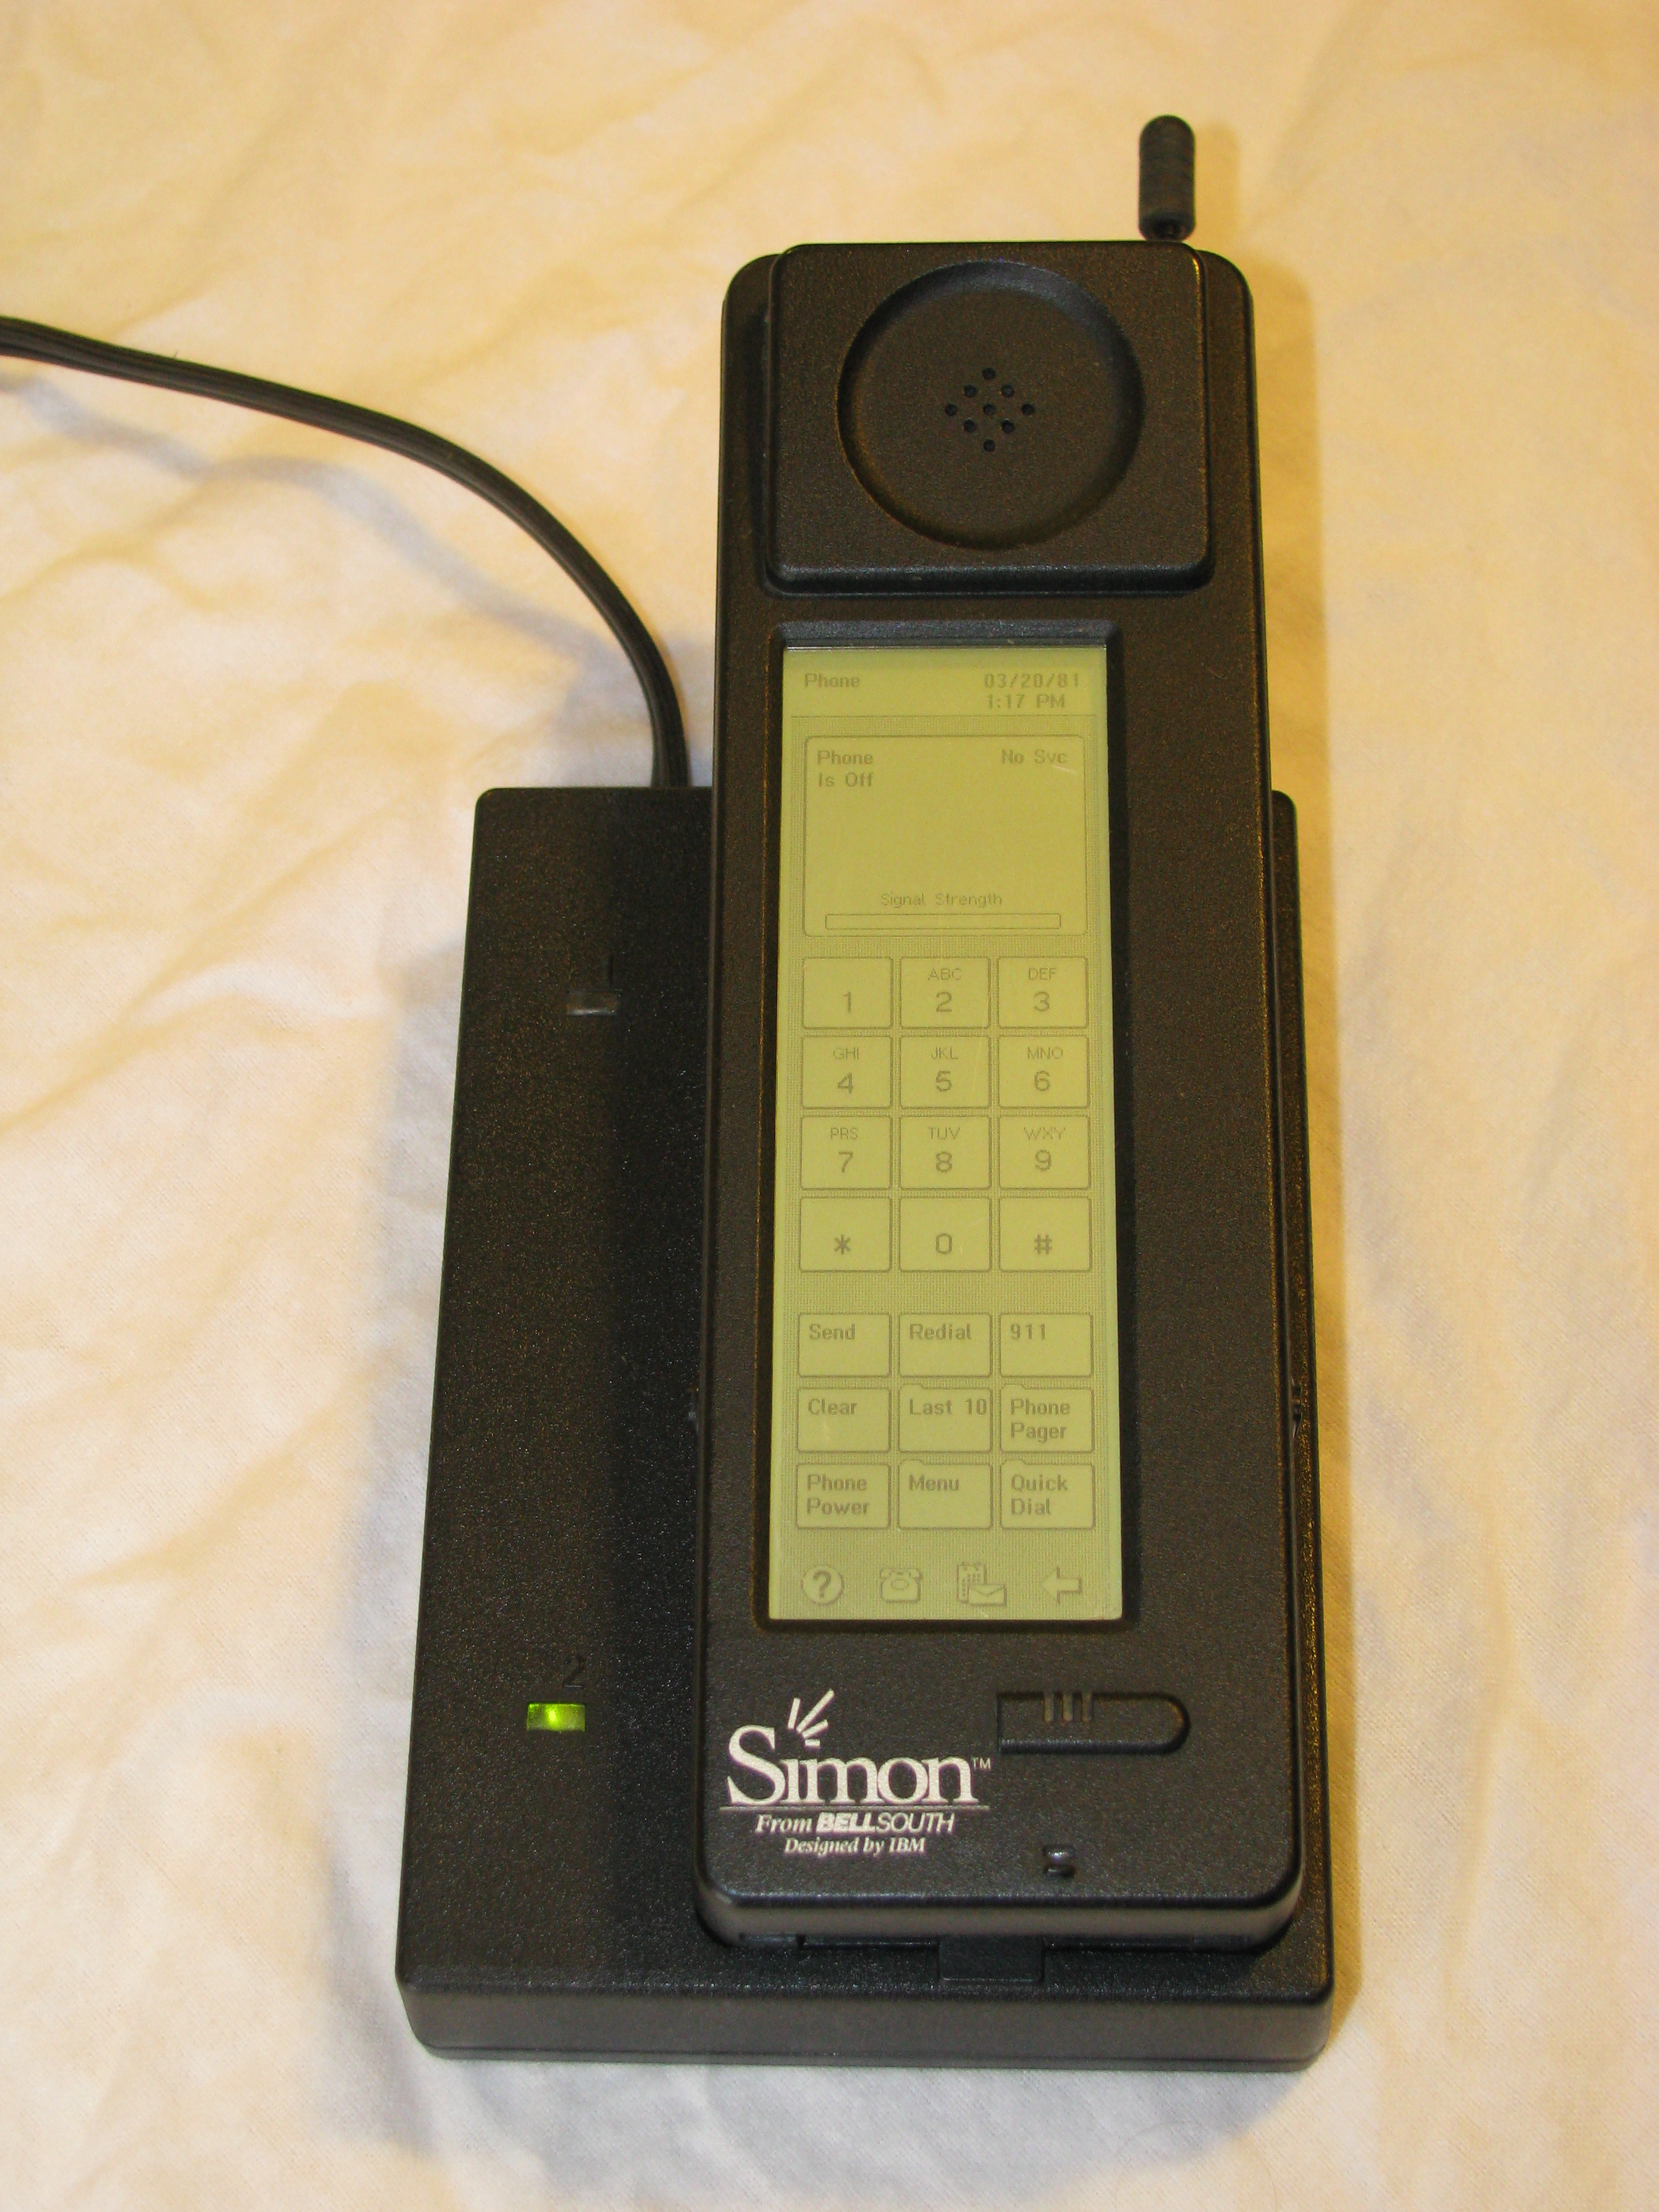 FileIBM SImon In Charging Station